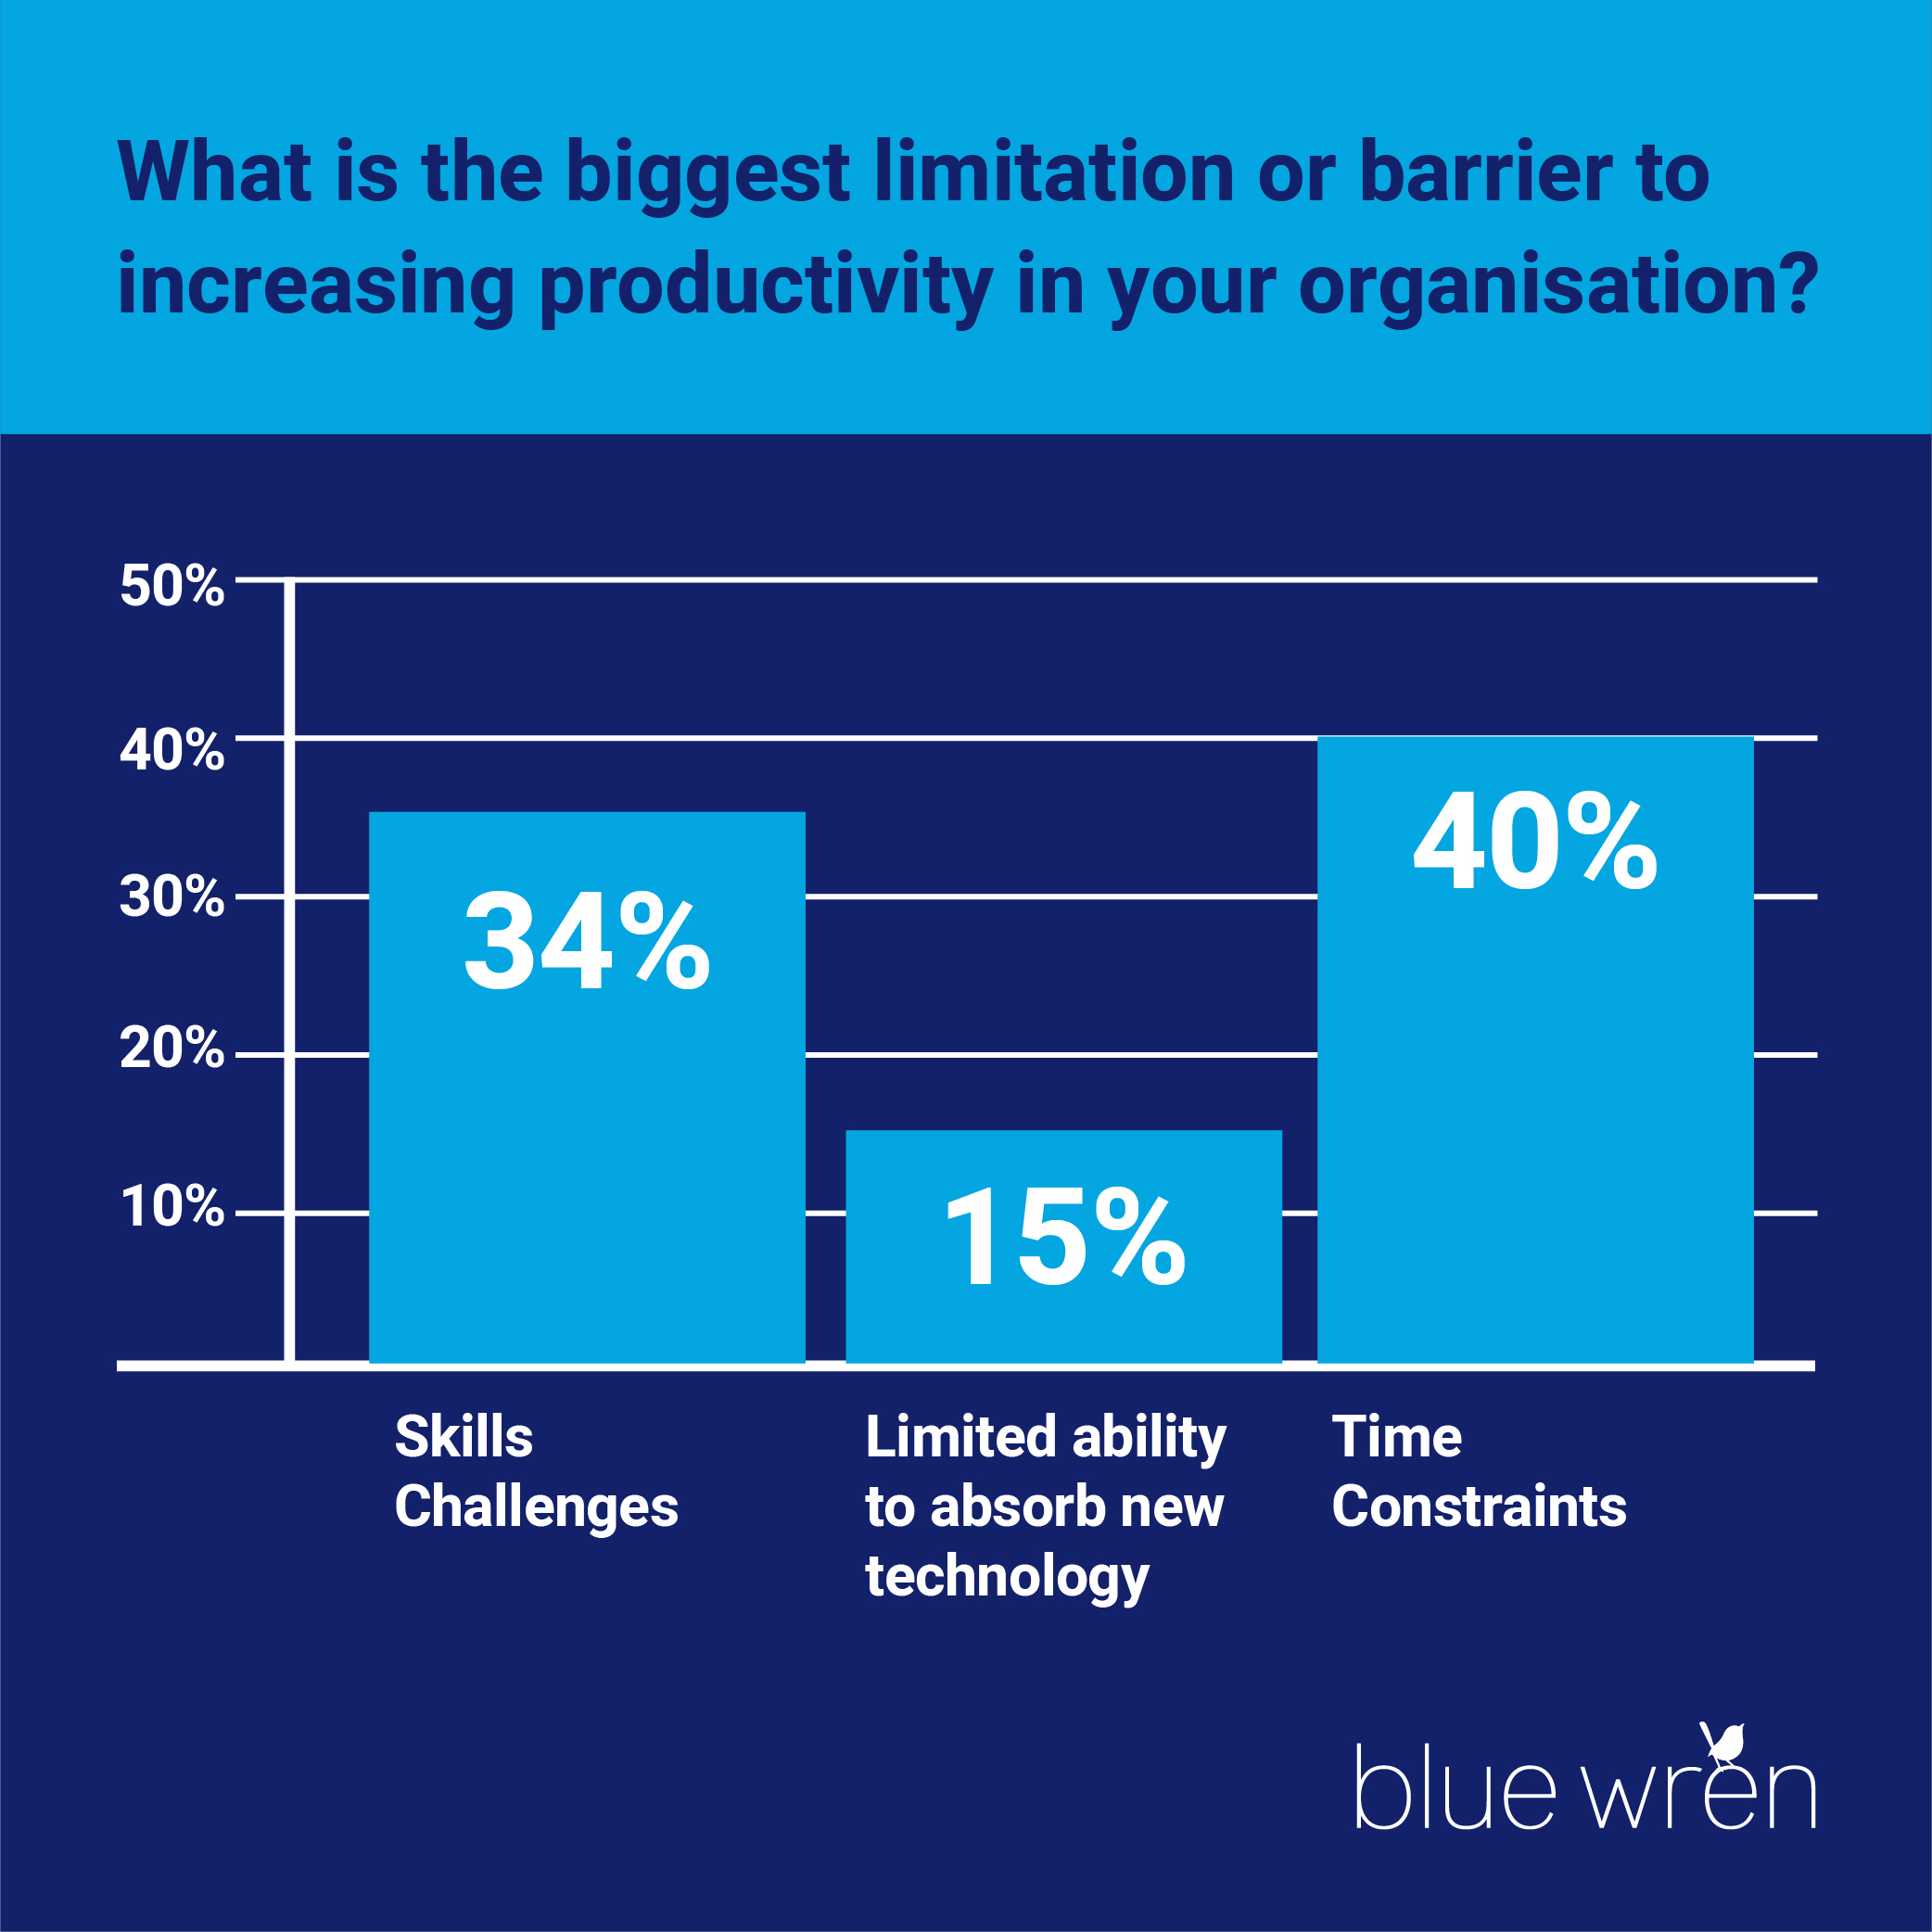 What is the biggest limitation or barrier to increasing productivity in your organisation